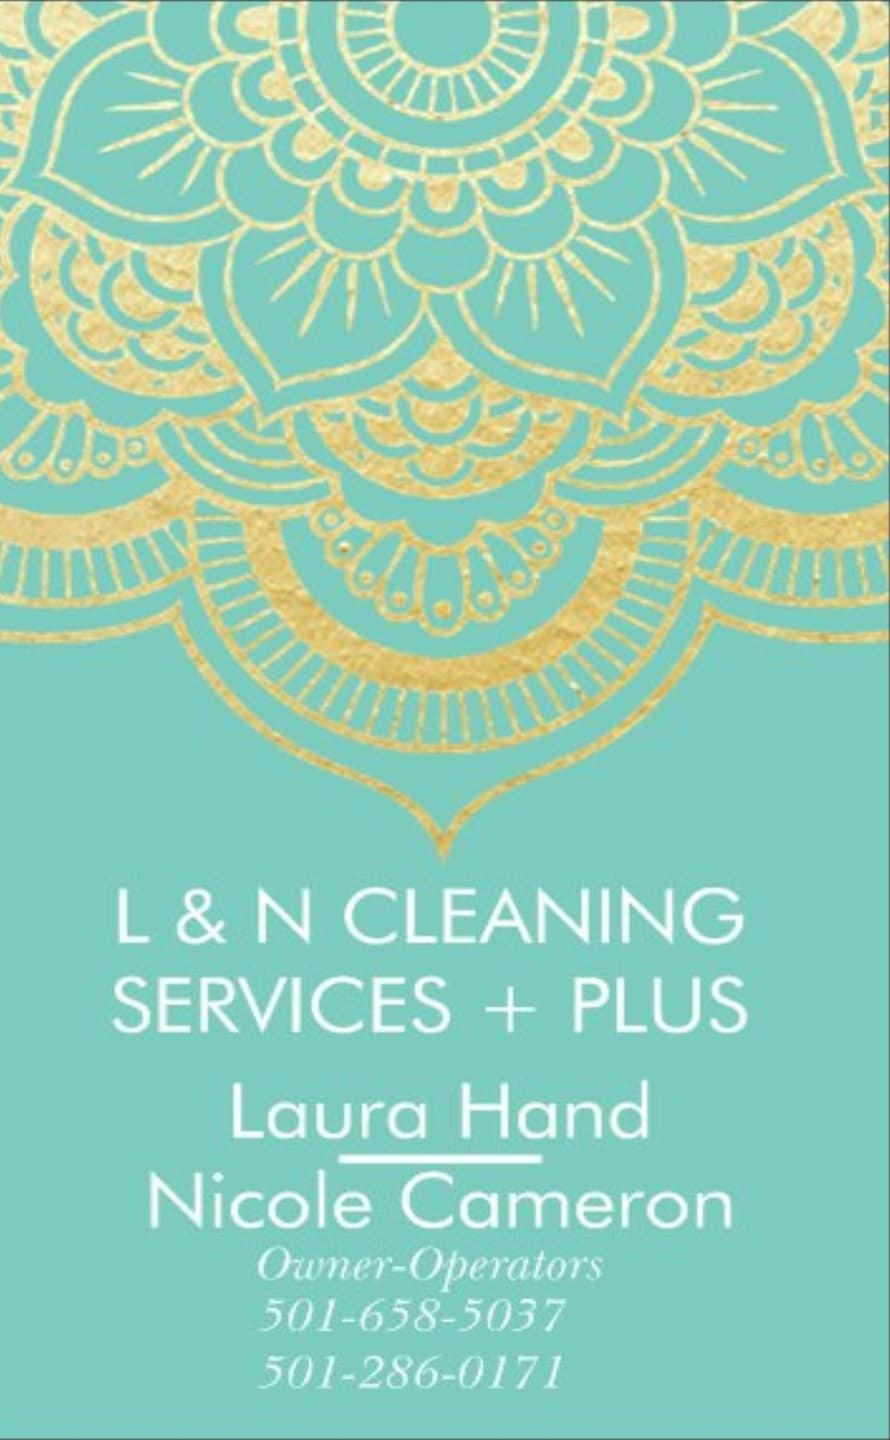 L & N Cleaning Services + Plus